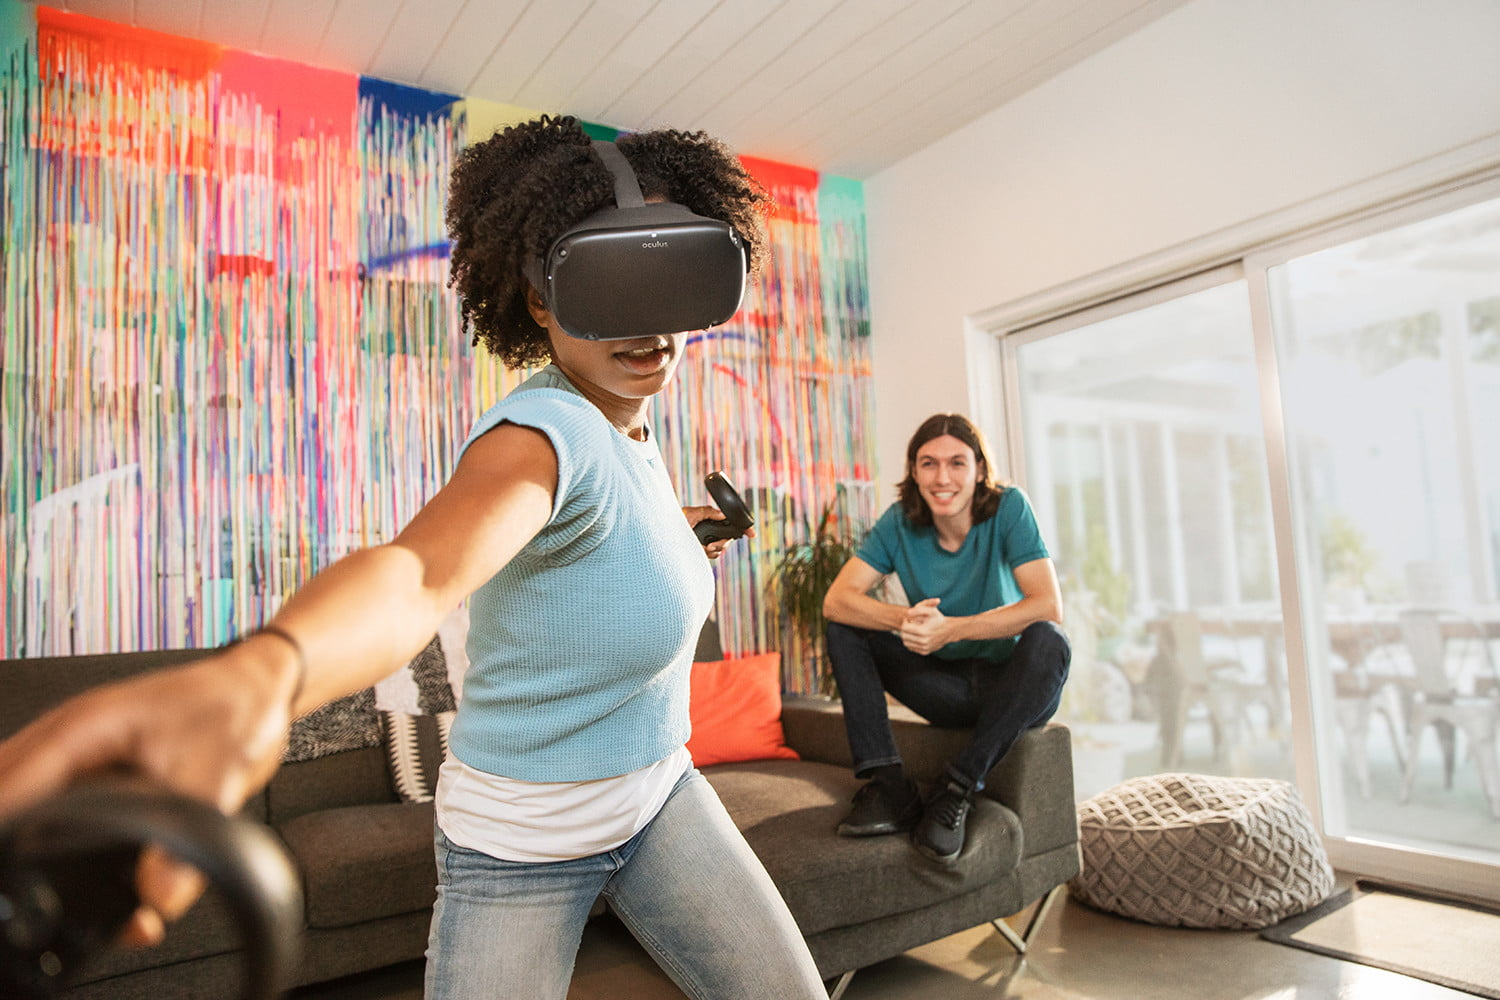 digitaltrends.com - Will Nicol - The Best Virtual Reality Apps for 2020